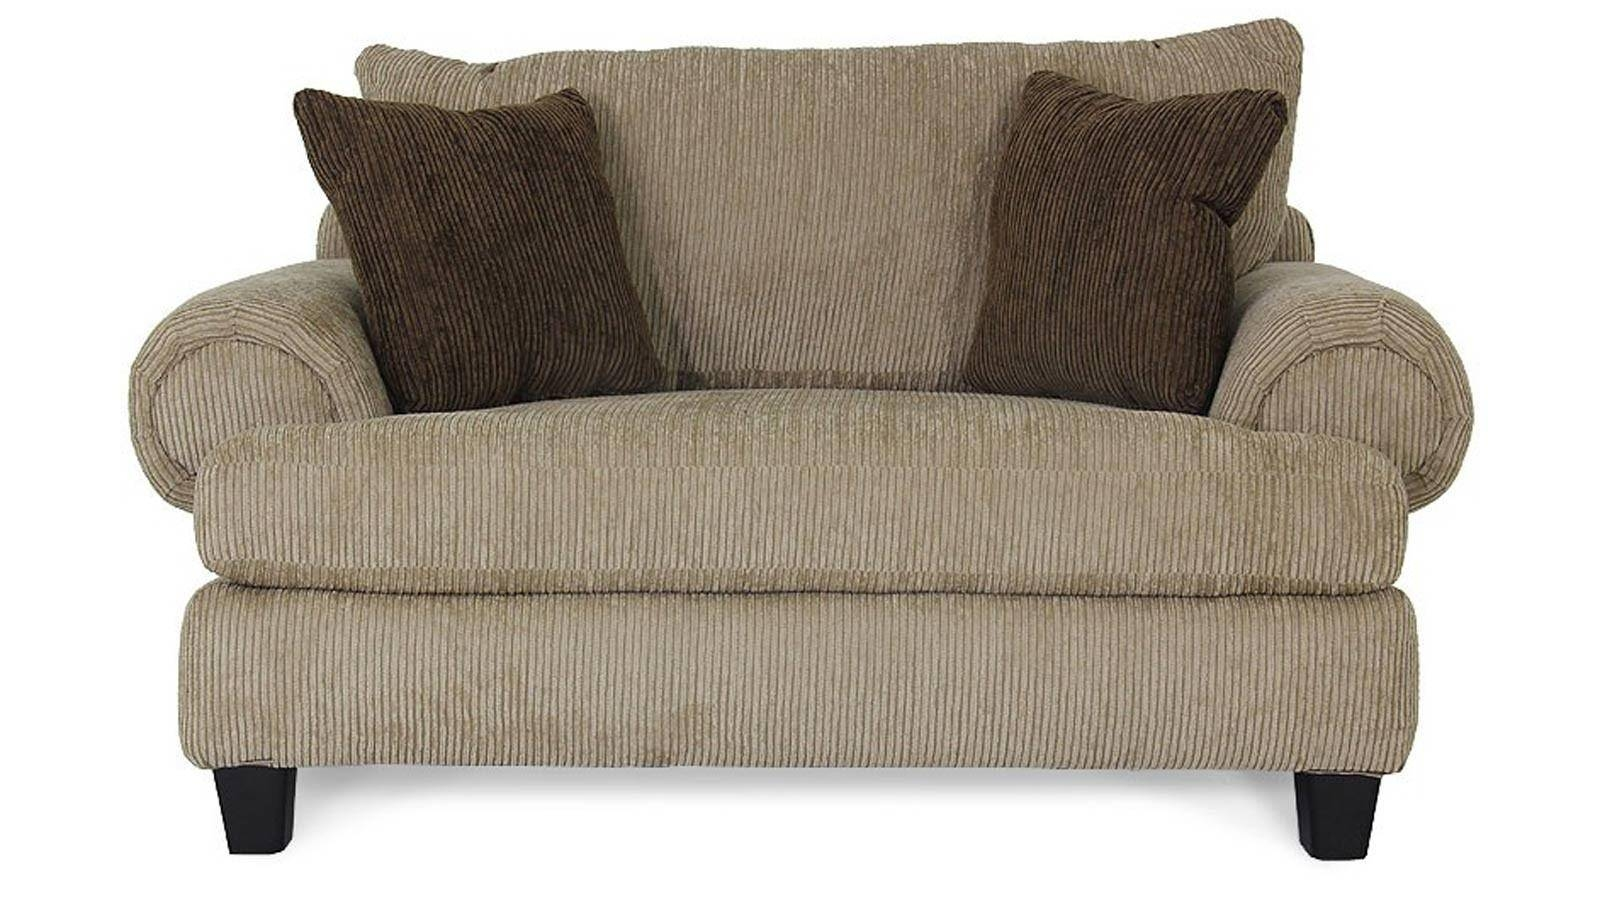 2017 Latest Allen White Sofas | Sofa Ideas throughout Allen White Sofas (Image 2 of 15)